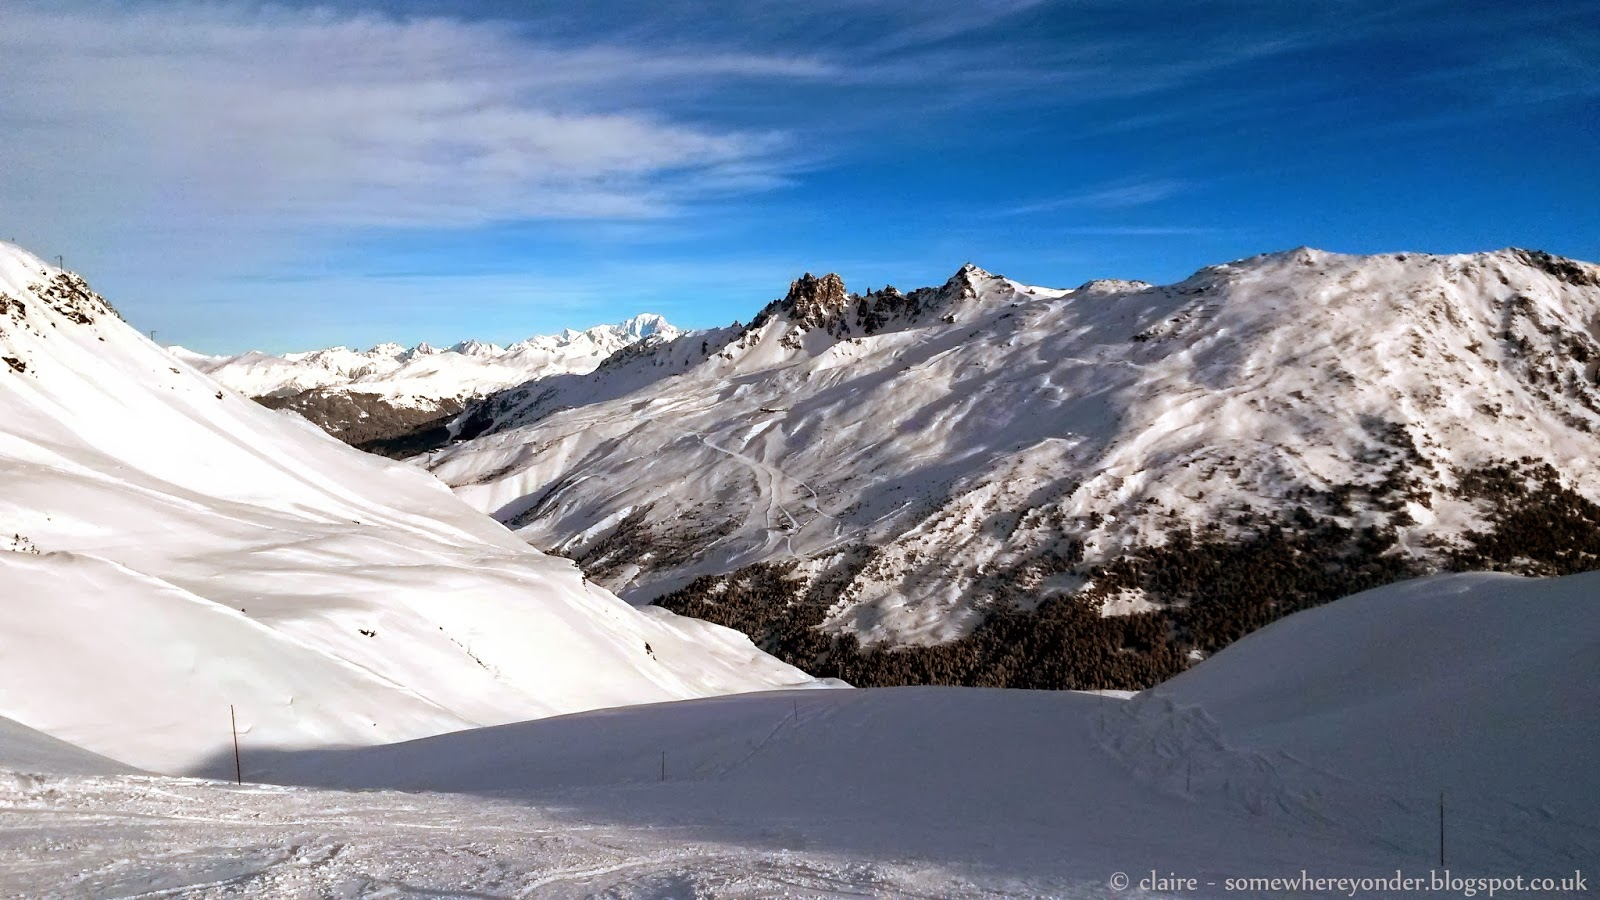 Beautiful scenery in Val Thorens, France